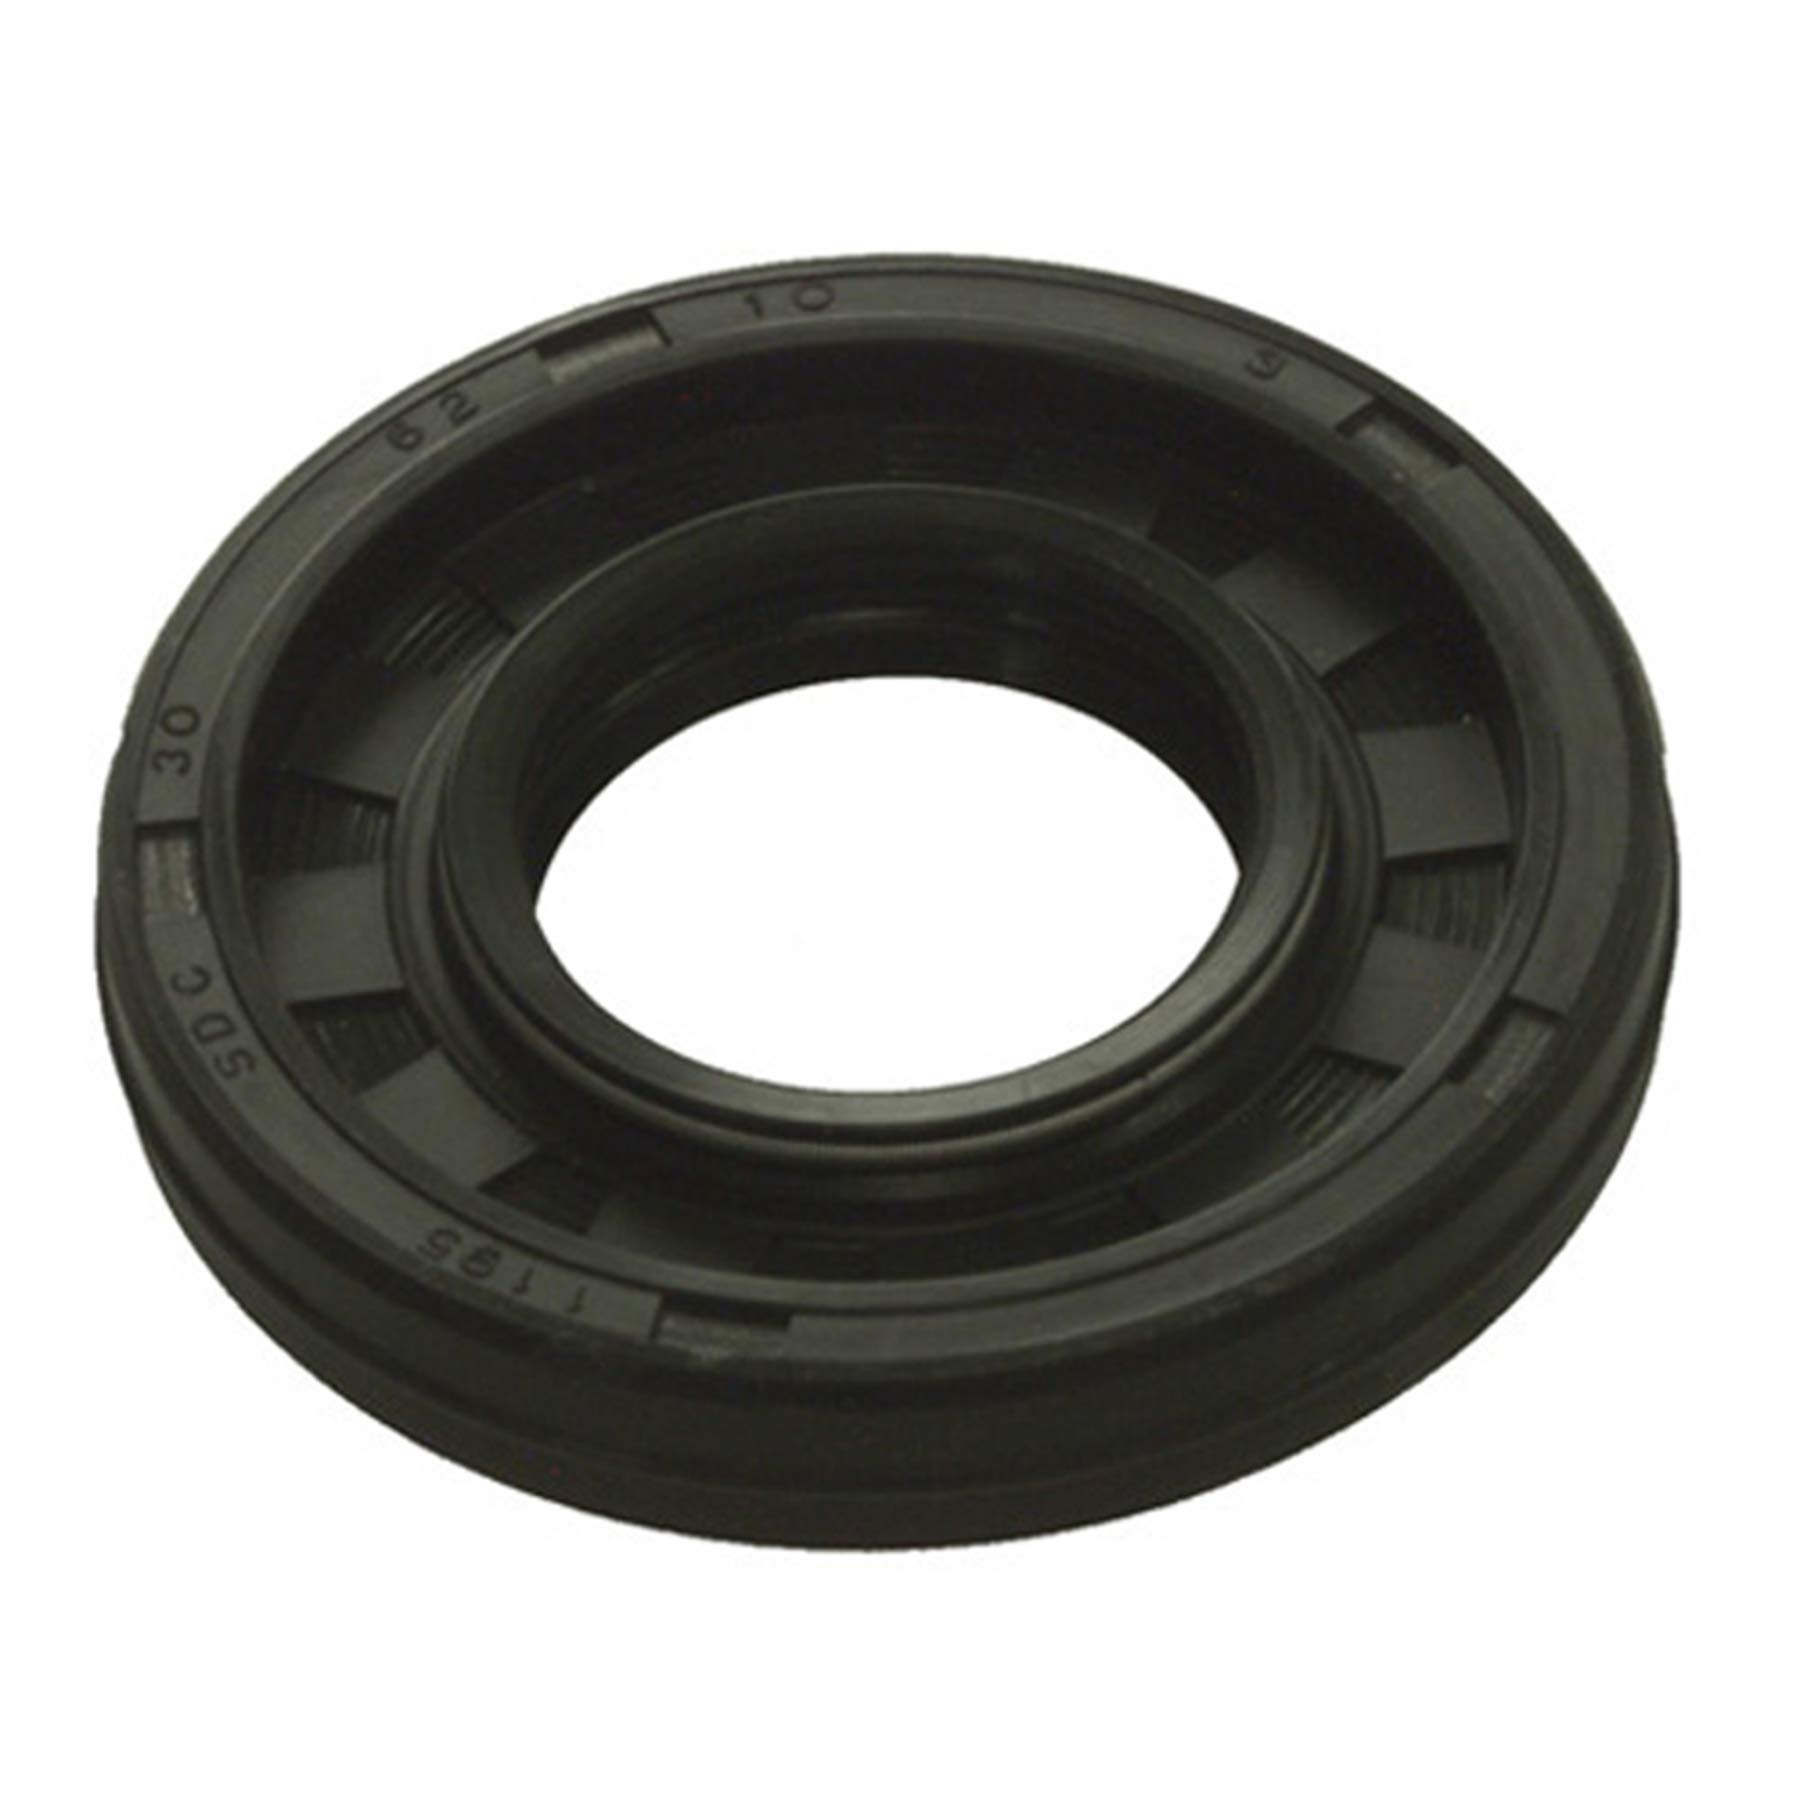 Crankshaft Oil Seal 2003 Ski-Doo MX Z 800 Sport Snowmobile by RD - Winderosa